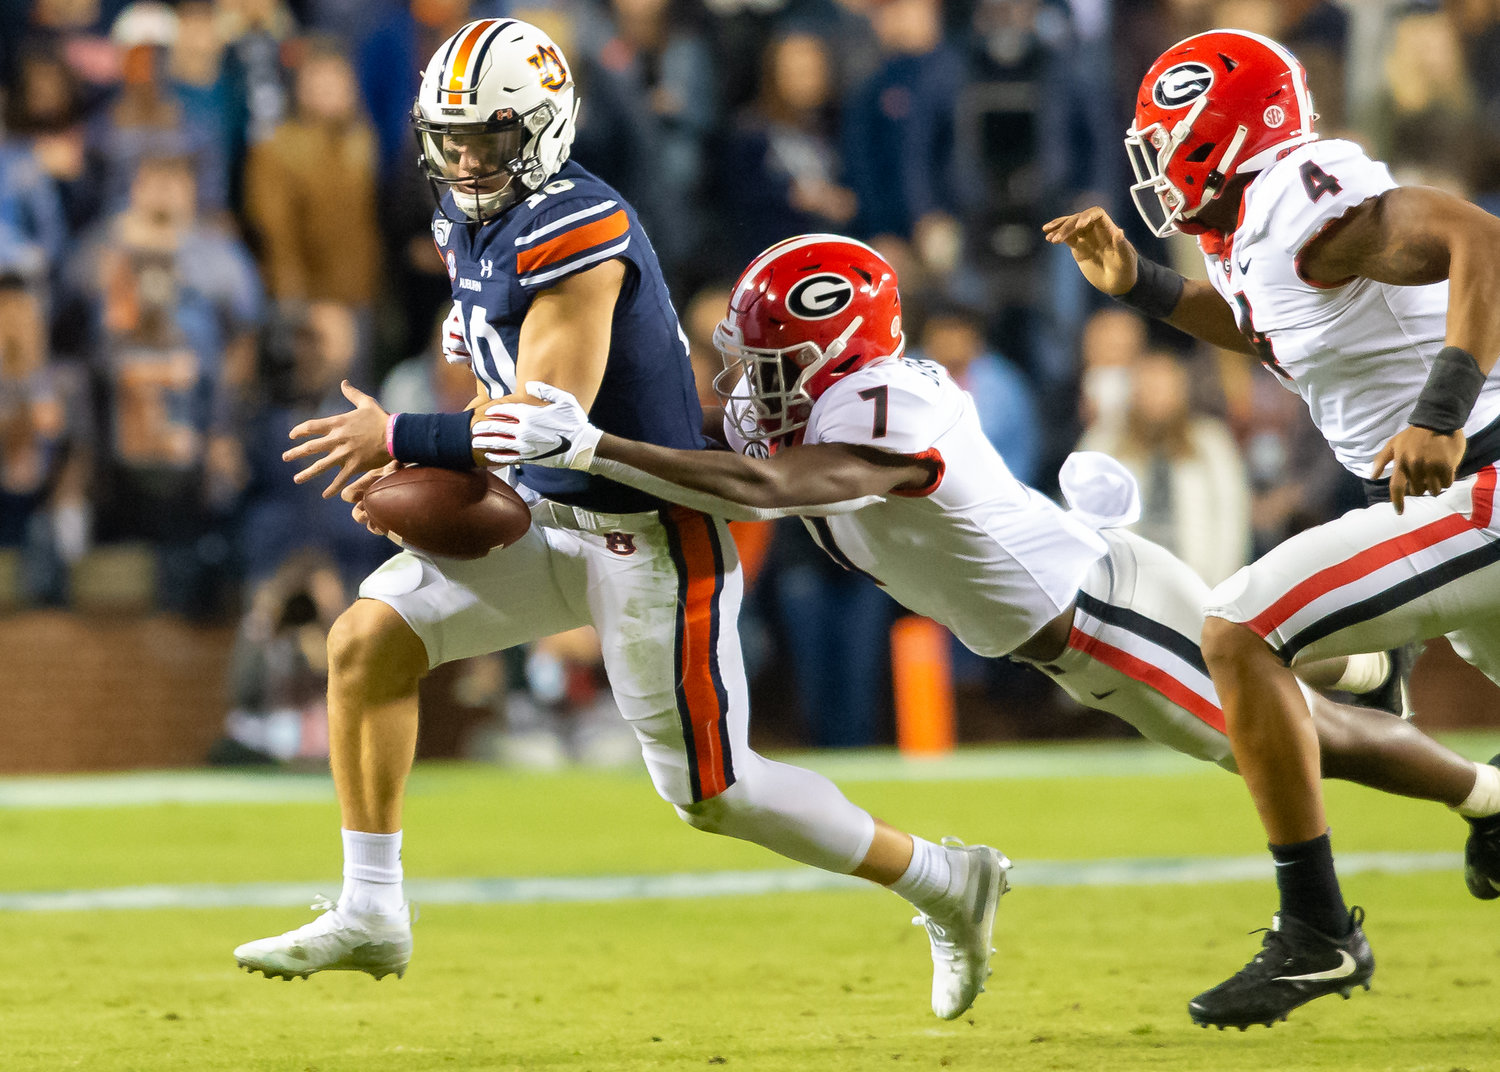 Georgia Bulldogs defensive back Tyrique Stevenson (7) dives for Auburn Tigers quarterback Bo Nix (10) during the second half of Saturday's game, at Jordan-Hare Stadium in Auburn,, AL. Daily Mountain Eagle -  Jeff Johnsey